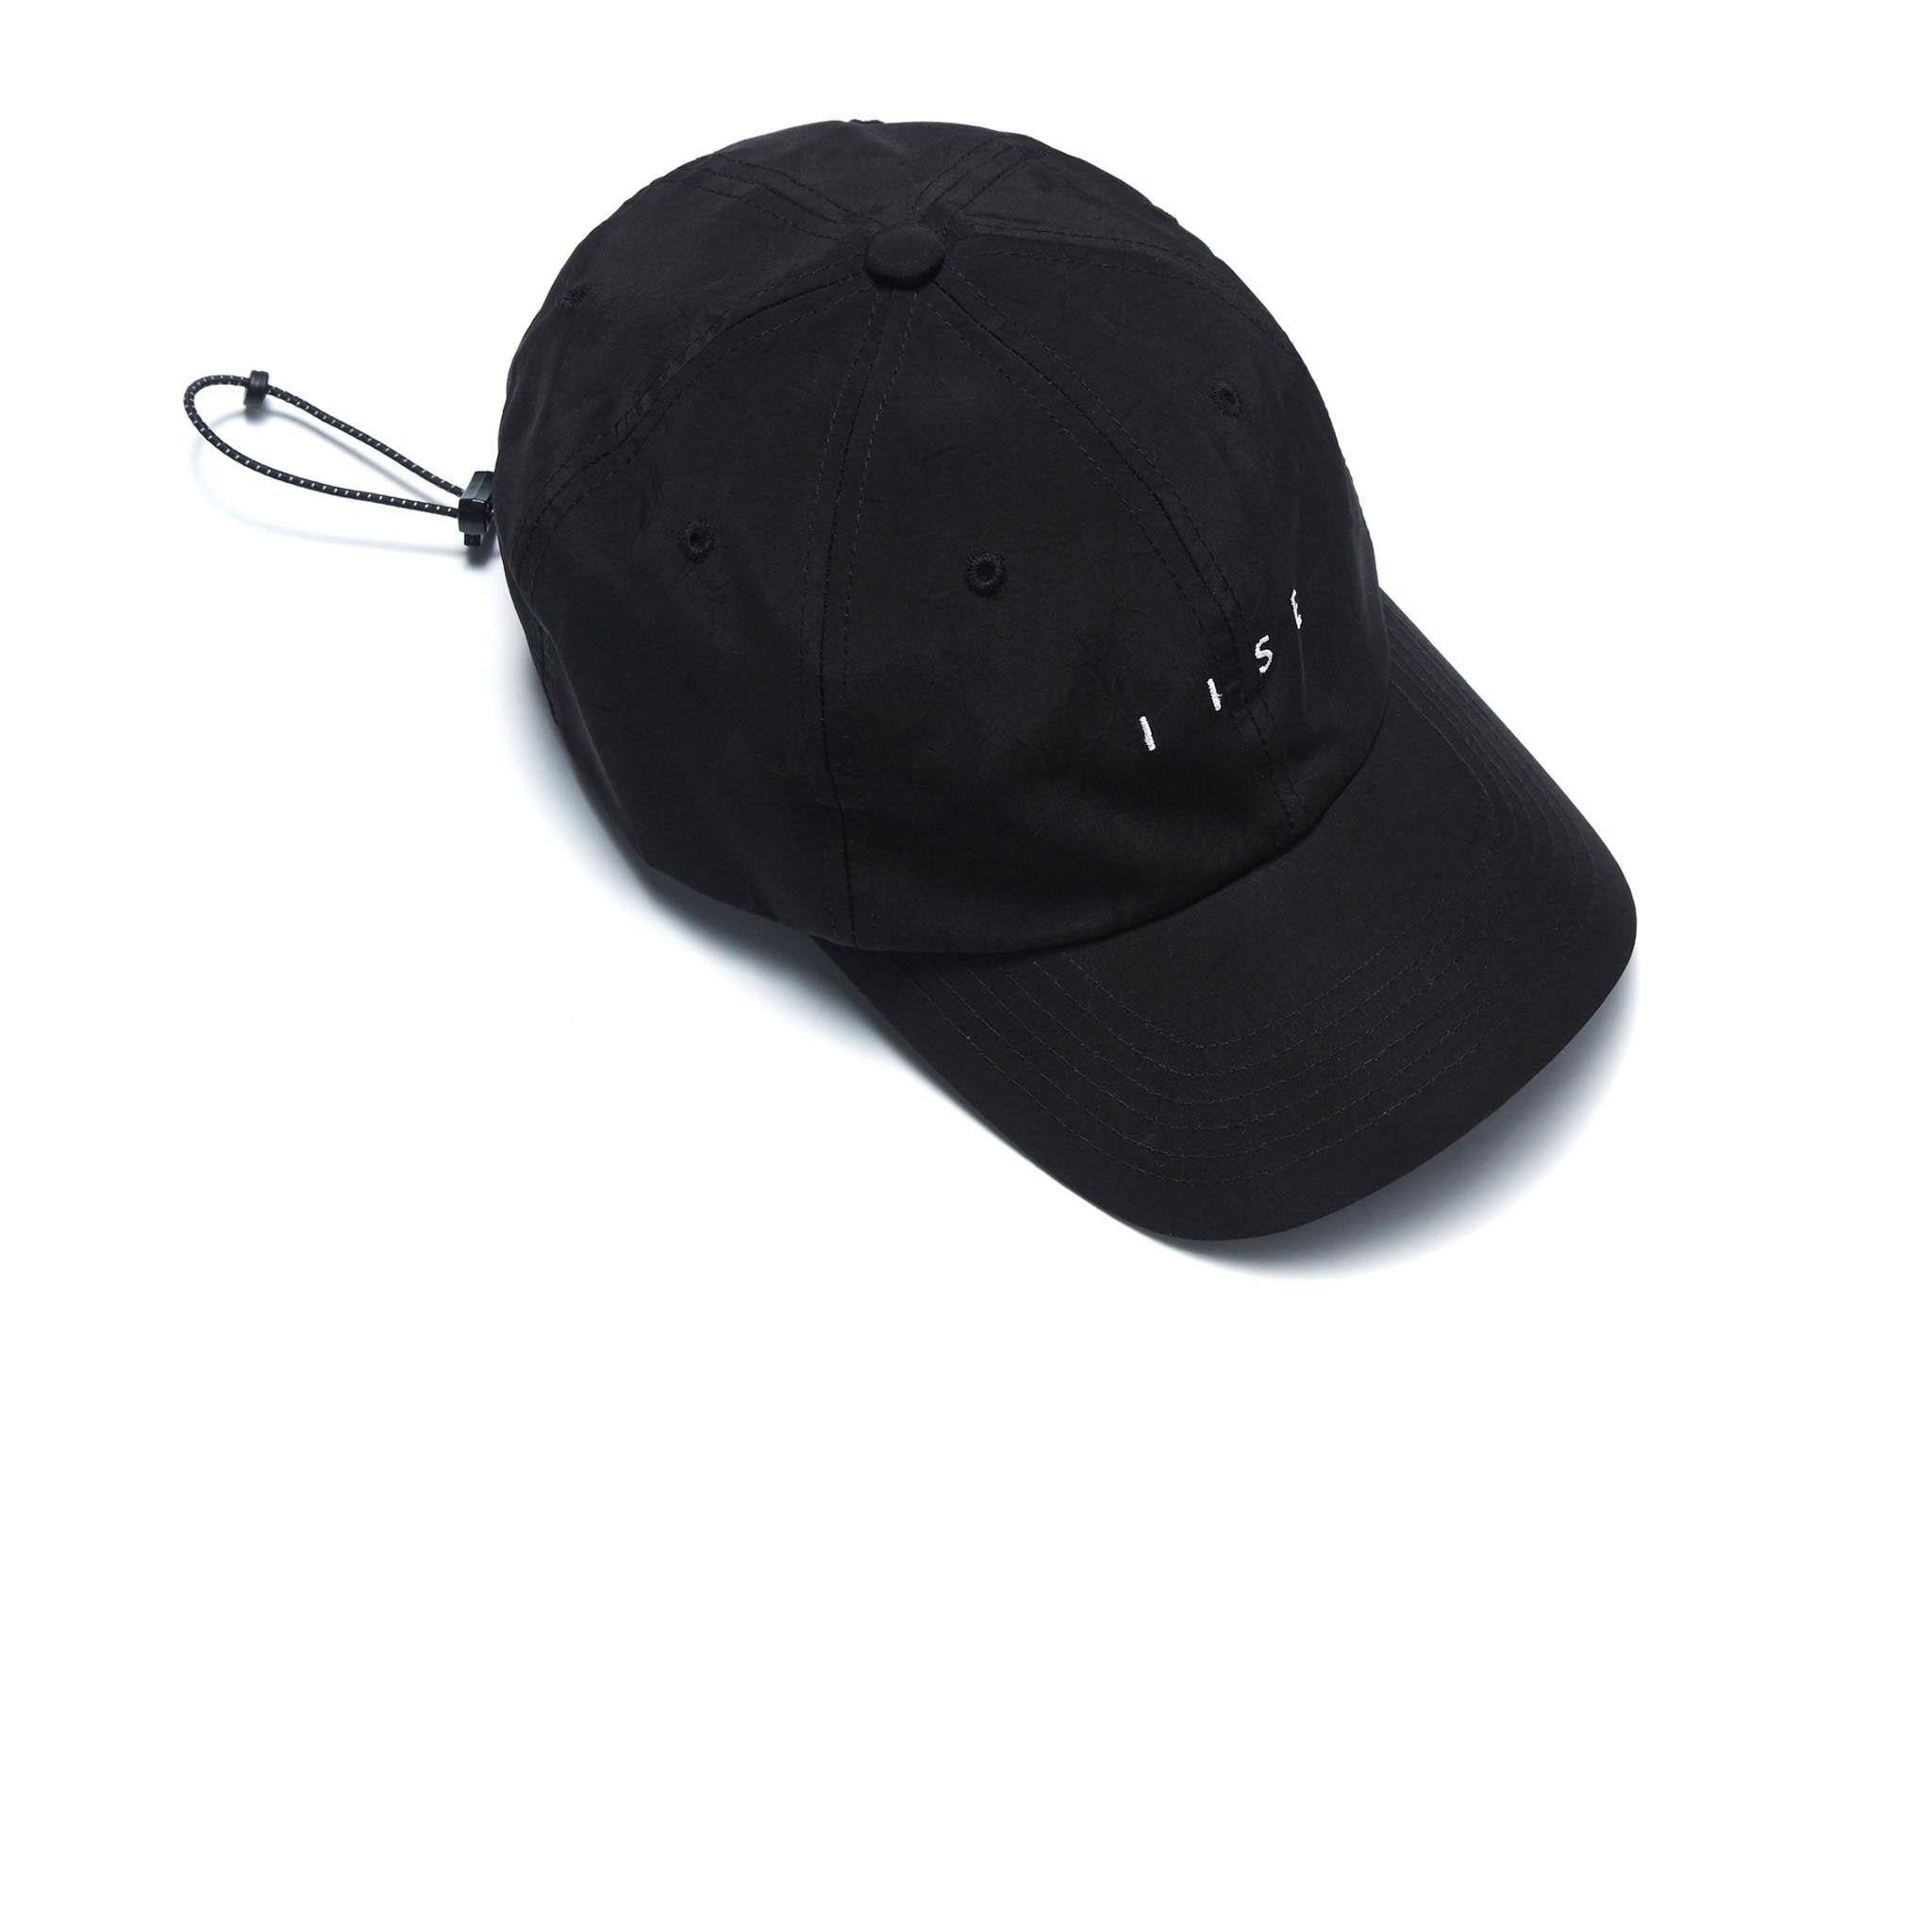 IISE D-Ring Cap Black